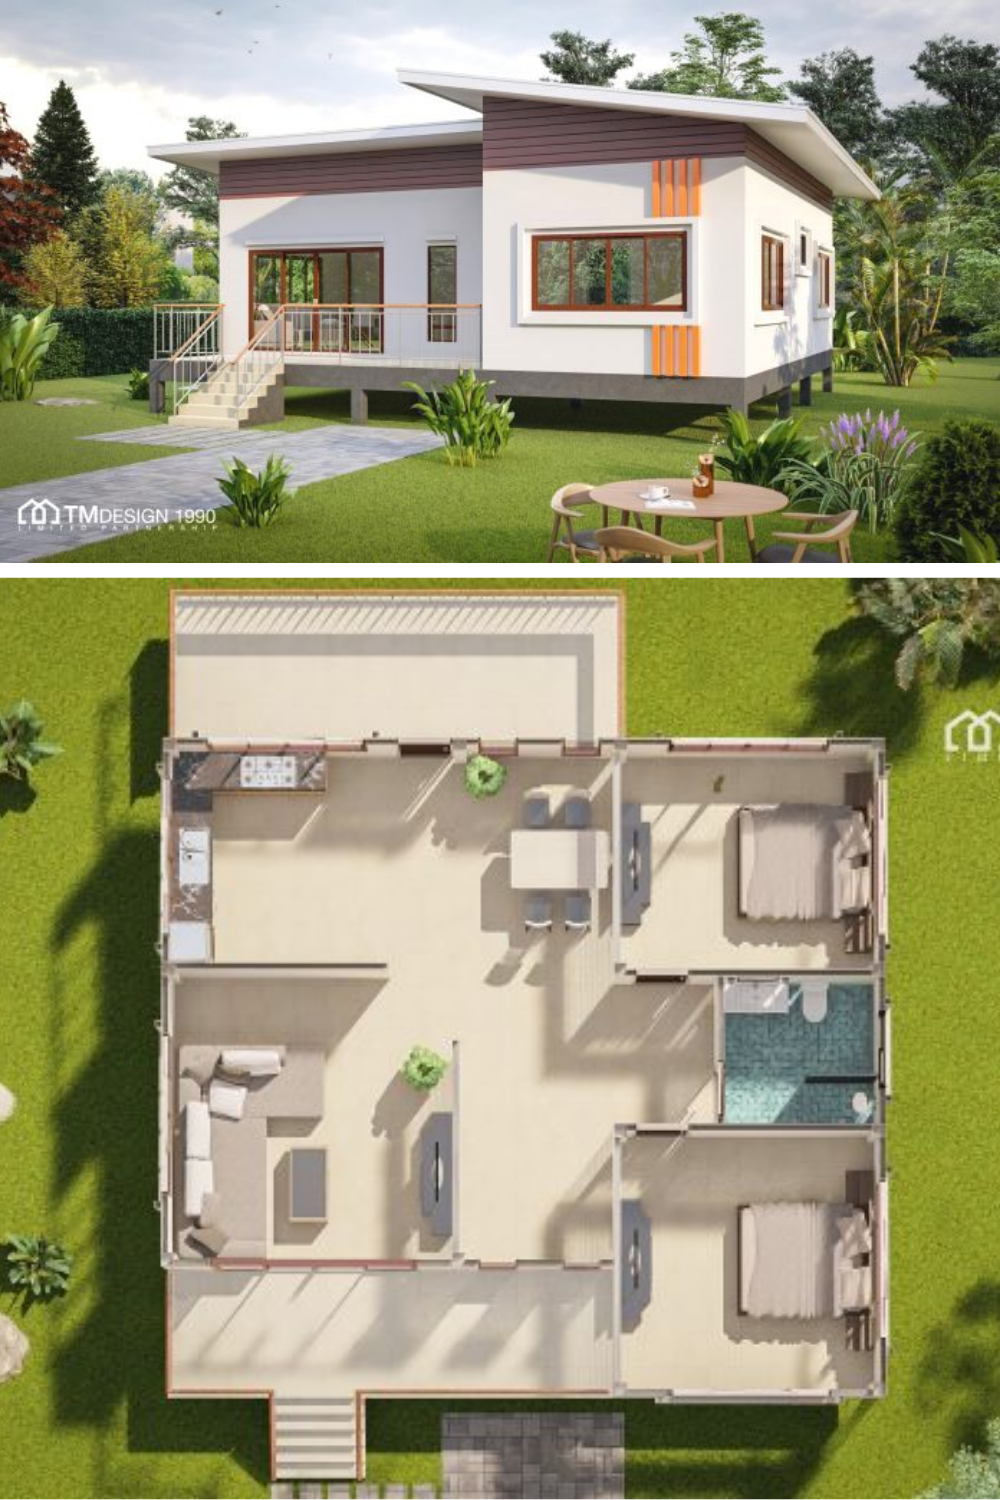 Elevated Two Bedroom Bungalow With A Cottage Look Pinoy Eplans Minimal House Design Flat House Design Little House Plans